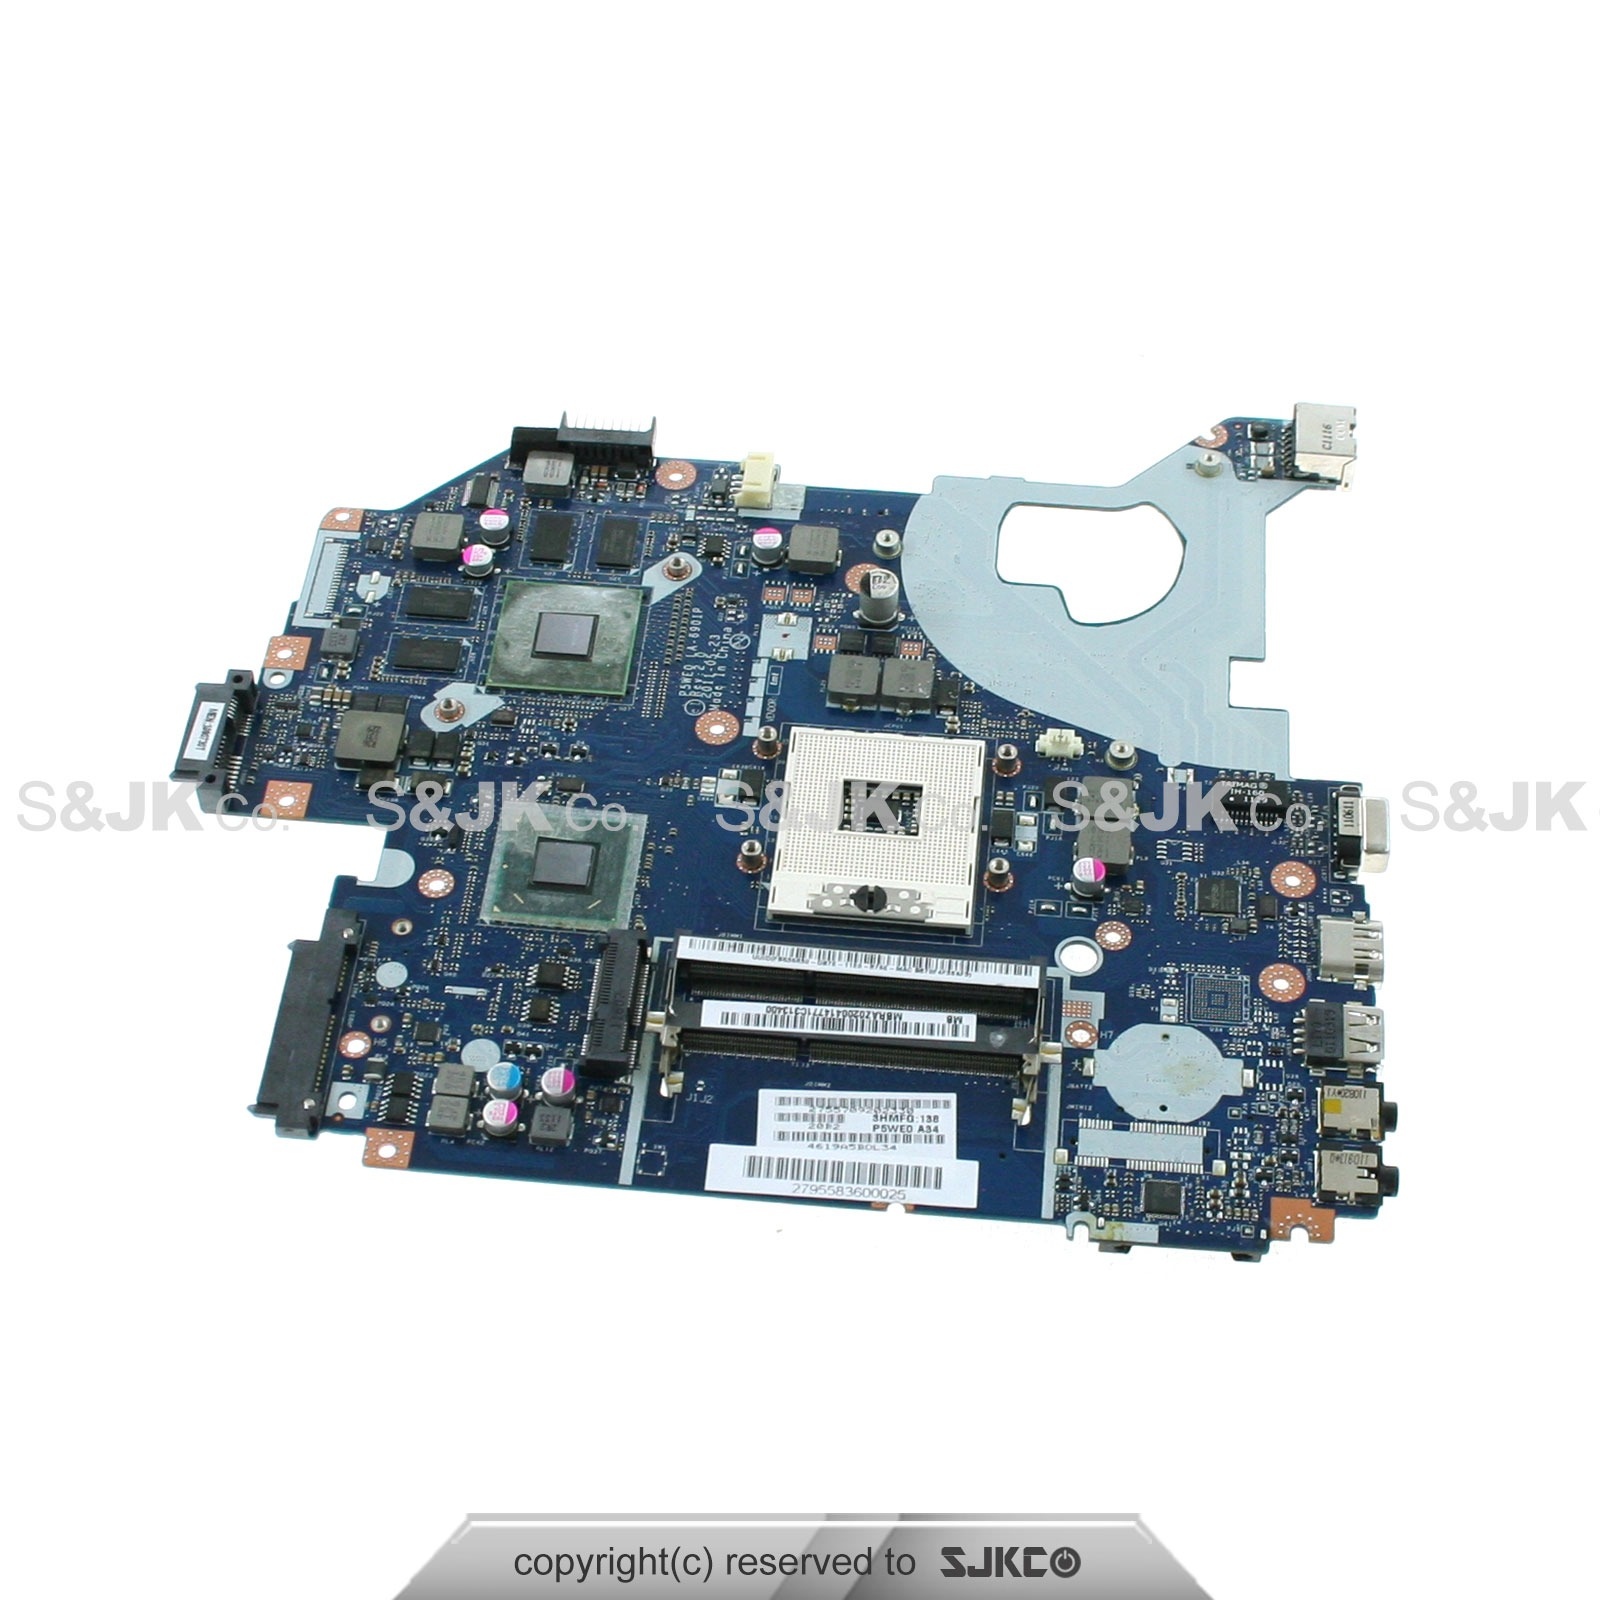 New Acer Aspire 5750g Intel Laptop S989 Motherboard Mb